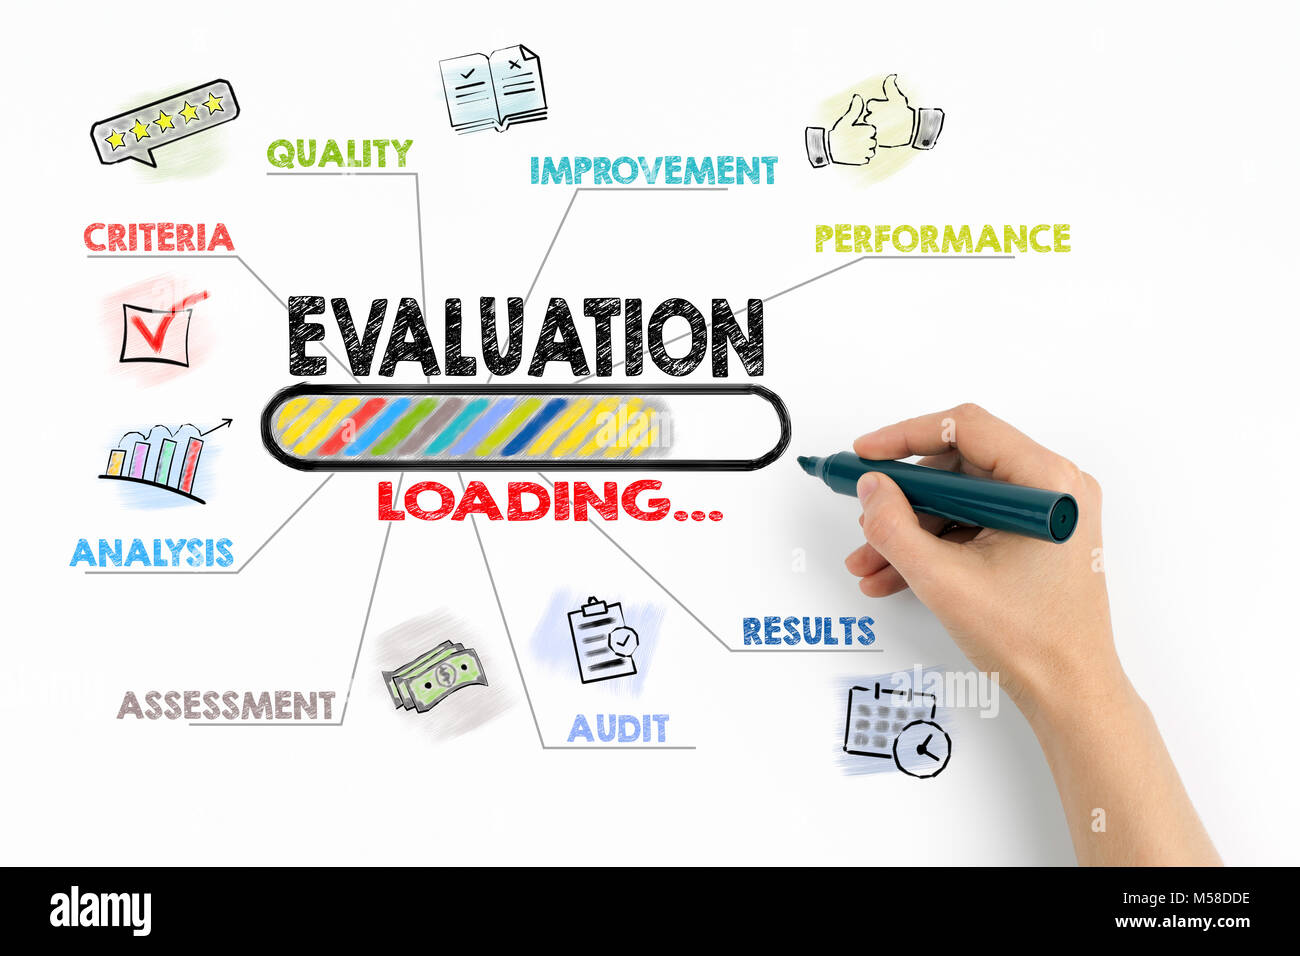 evaluation Concept. Chart with keywords and icons on white background - Stock Image